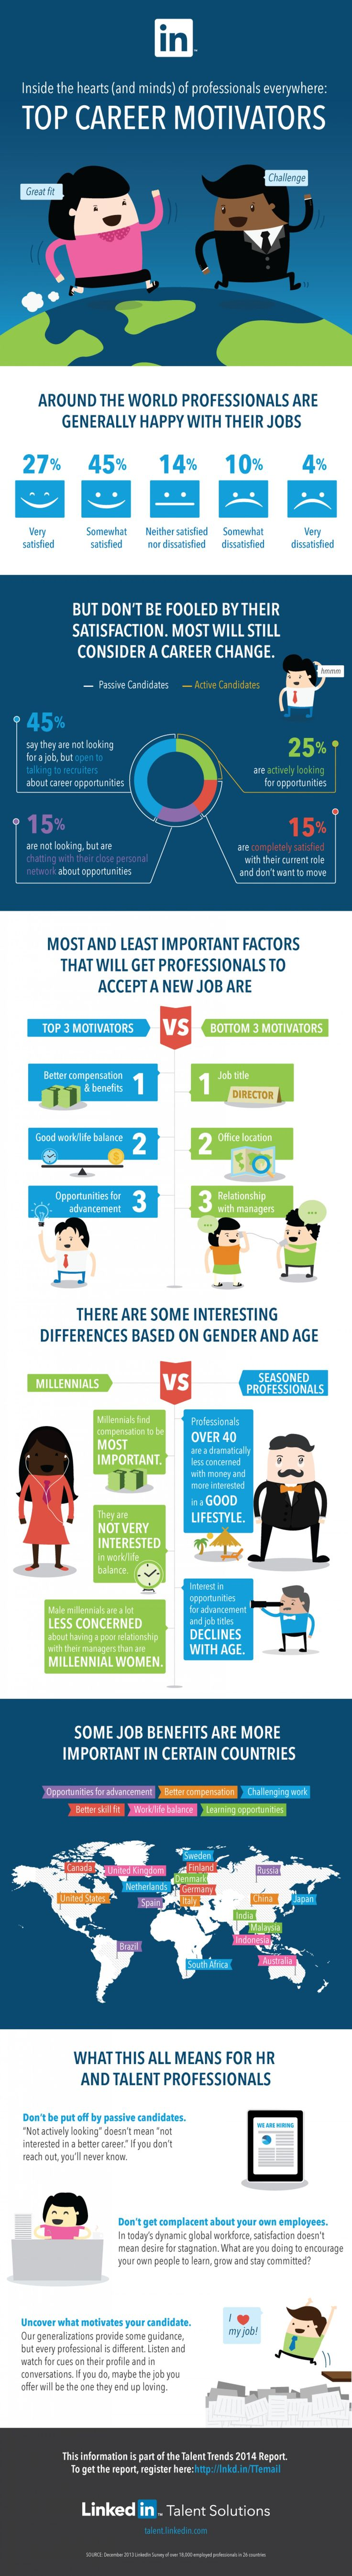 What Motivates Professionals to Switch Jobs #infographic #infografía